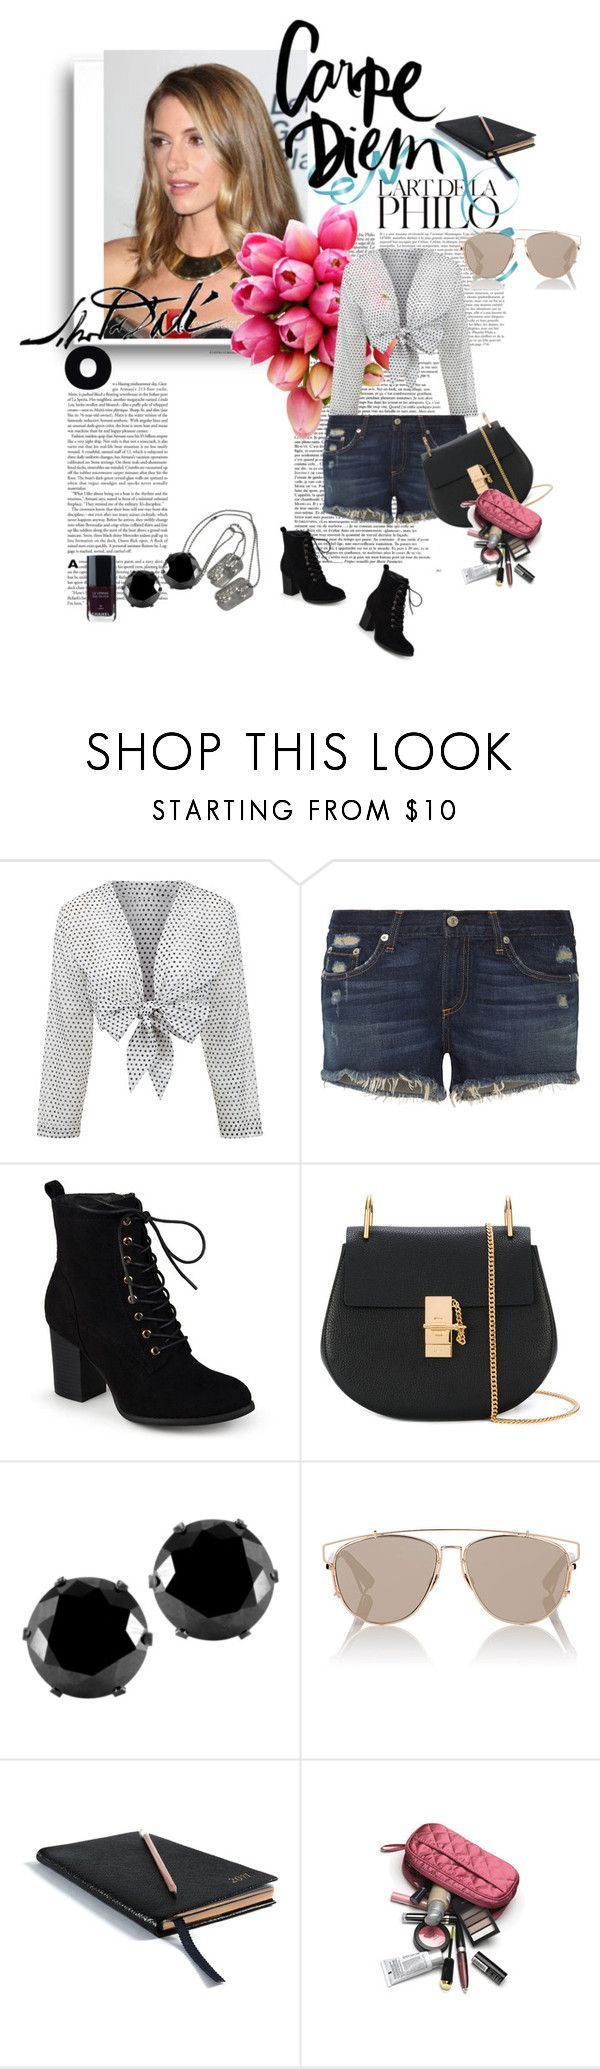 """Untitled #236"" by bonniesock ❤ liked on Polyvore featuring Lisa Marie Fernandez, rag & bone, Journee Collection, Chloé, West Coast Jewelry, Christian Dior, Reception, Smythson, Salvador Dali and Chanel"